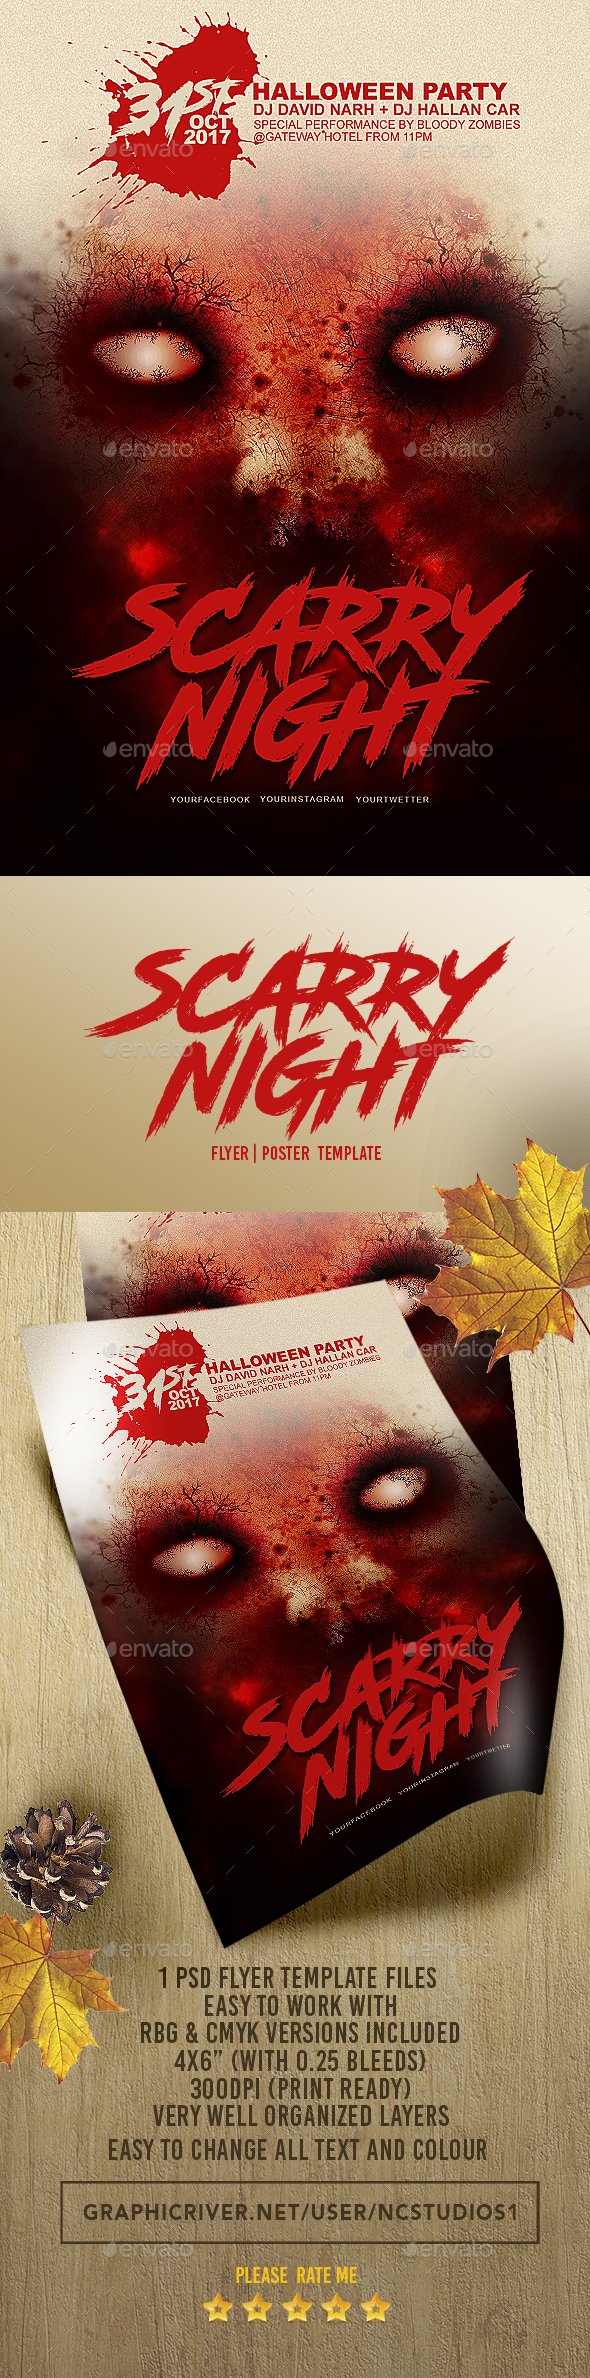 Halloween Flyer Template 3 - Flyers Print Templates